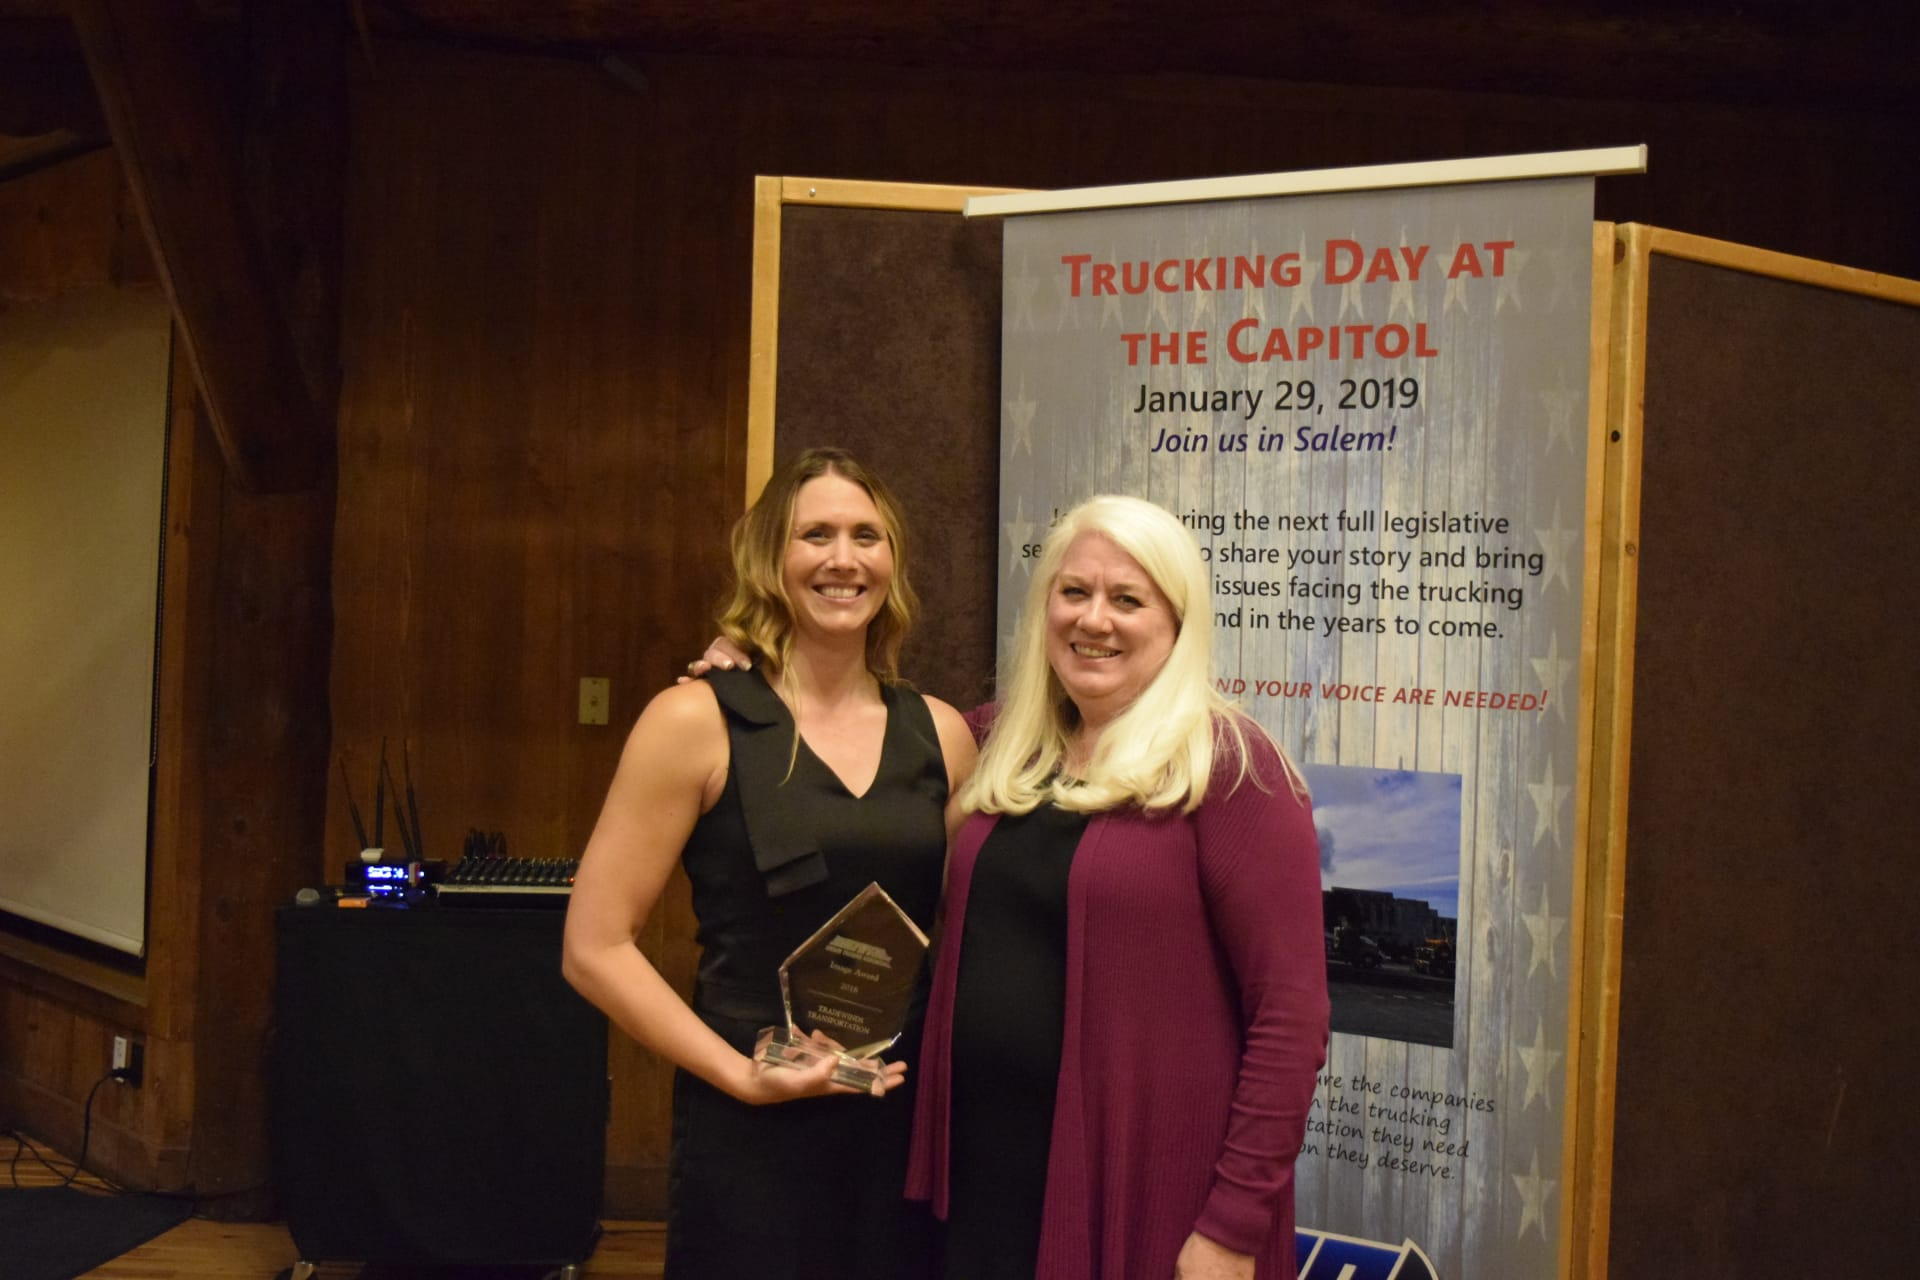 Jana Jarvis, OTA President poses with 2018 Image Award Winner, Tradewinds Transportation accepted by Heather Hayes